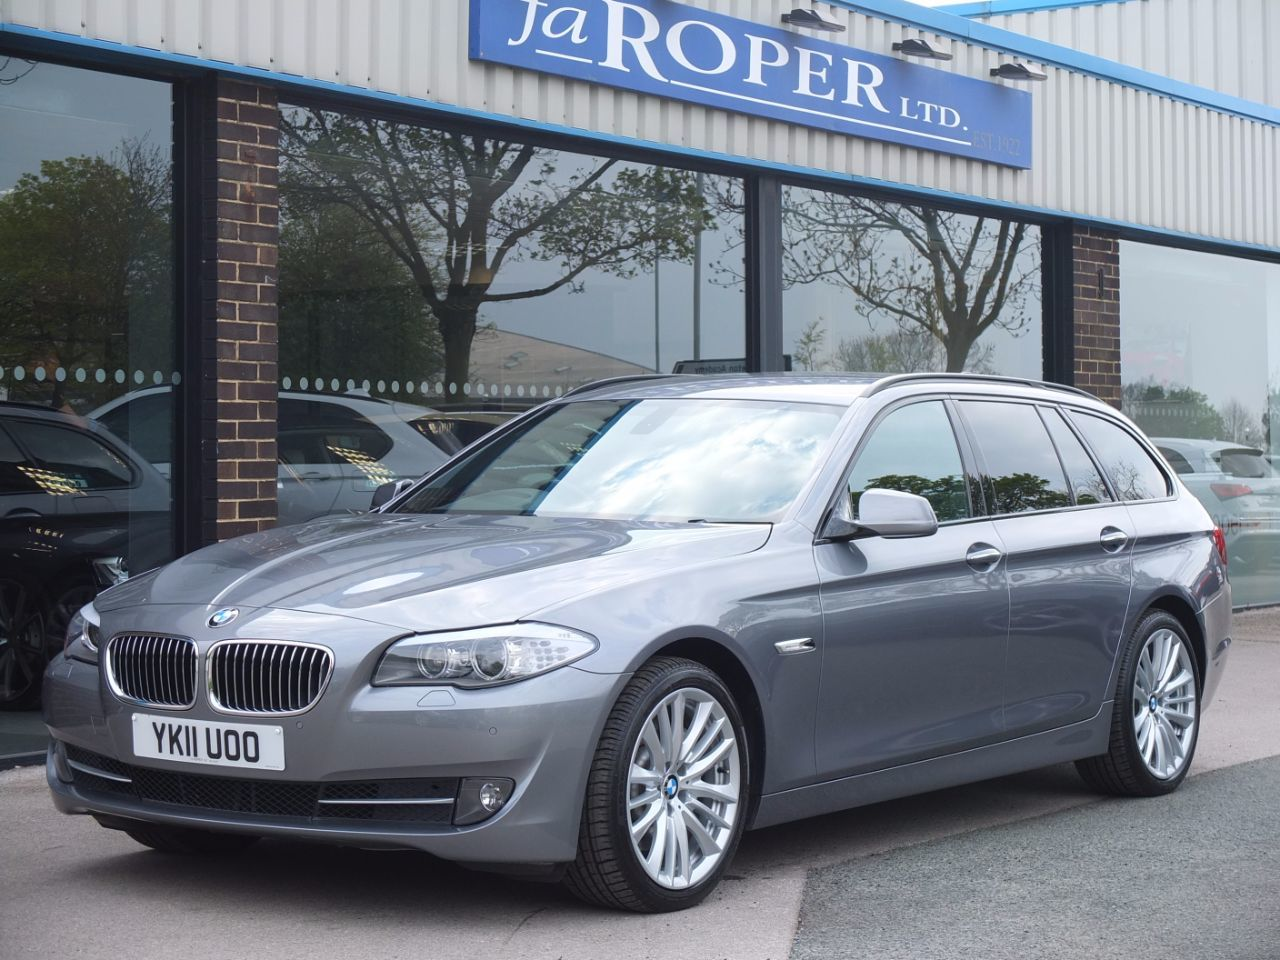 BMW 5 Series 3.0 525d SE Touring Auto (Media and Dynamic Packs) +++Spec Estate Diesel Space Grey MetallicBMW 5 Series 3.0 525d SE Touring Auto (Media and Dynamic Packs) +++Spec Estate Diesel Space Grey Metallic at fa Roper Ltd Bradford